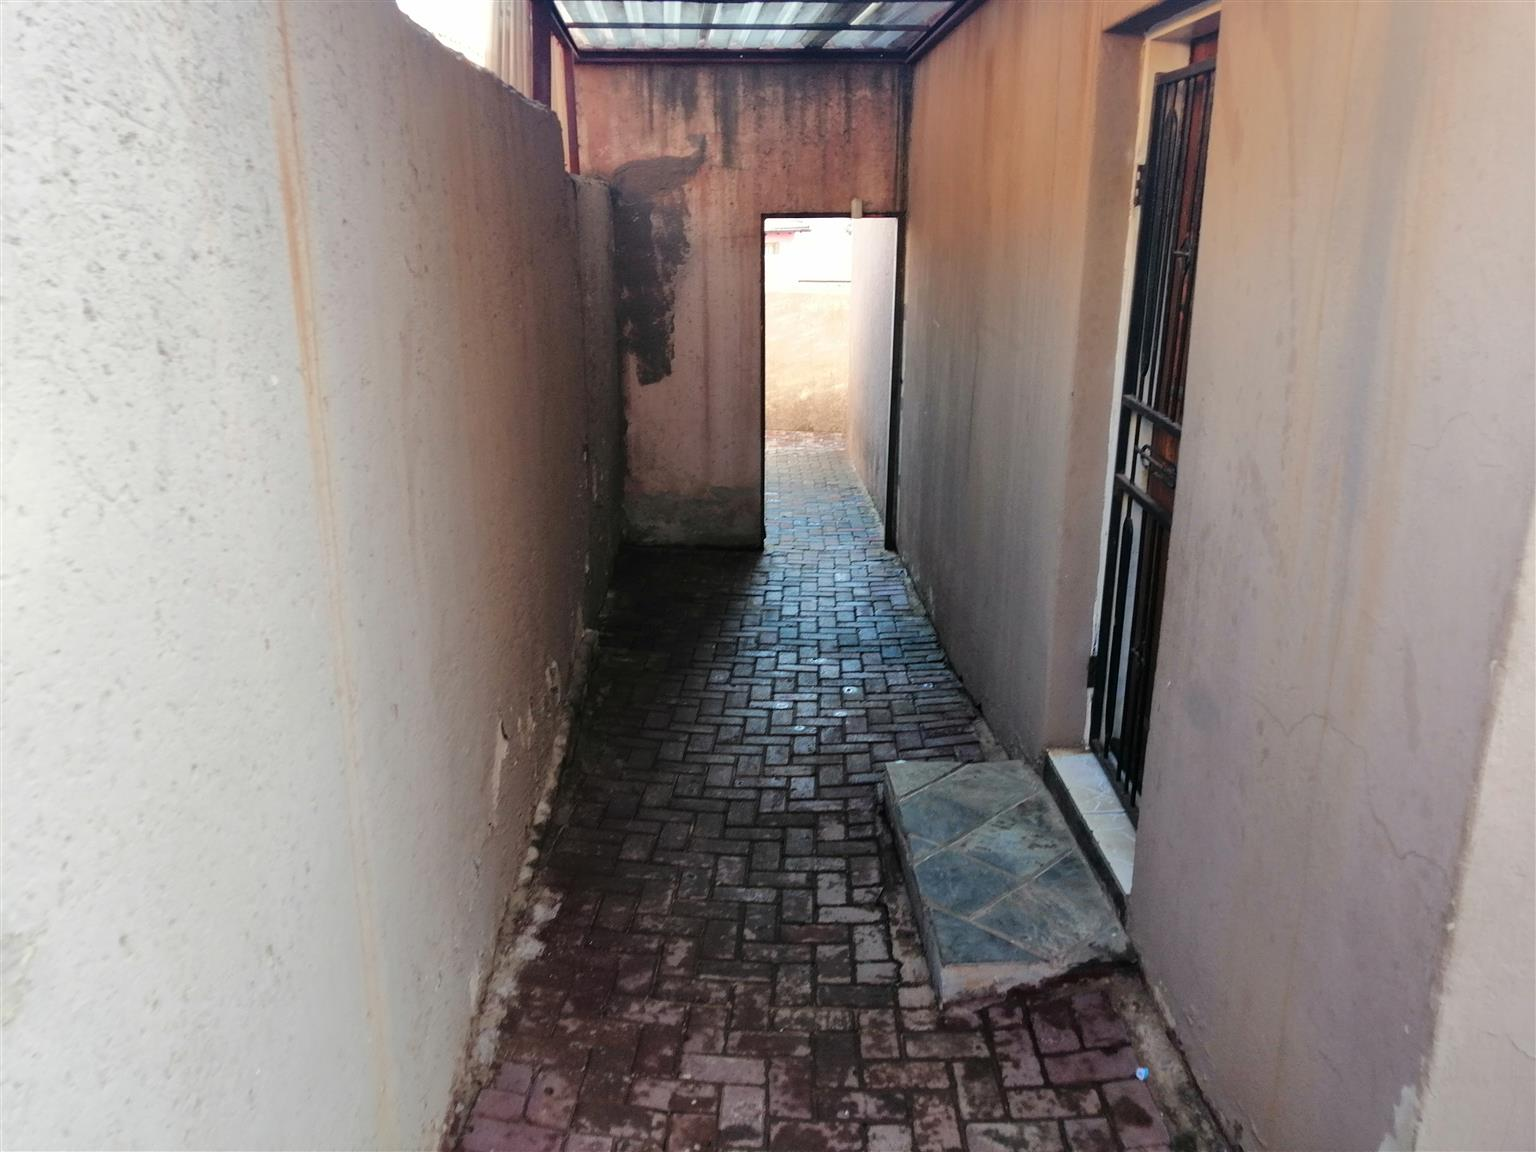 House for sale tembisa hospital view two badroom dining room seating room kitchen toilet bathroom and outside bachelor party rooms with shower and toilet with wall units fitted